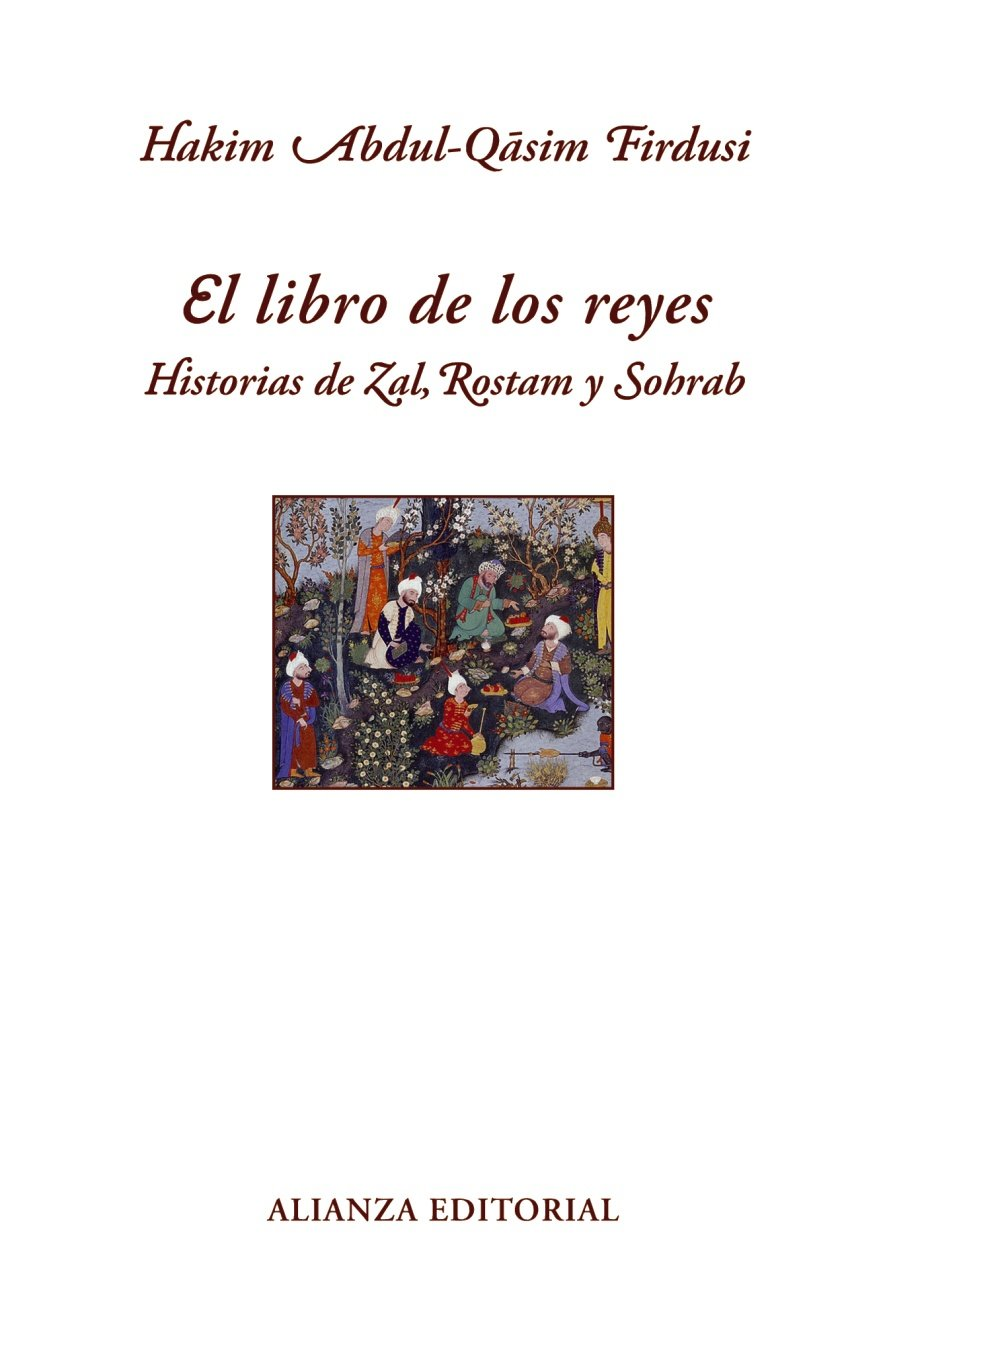 Read Online El libro de los reyes / The Book of Kings: Historias De Zal, Rostam Y Sohrab / Tales of Zal, Rostam and Shorab (Spanish Edition) pdf